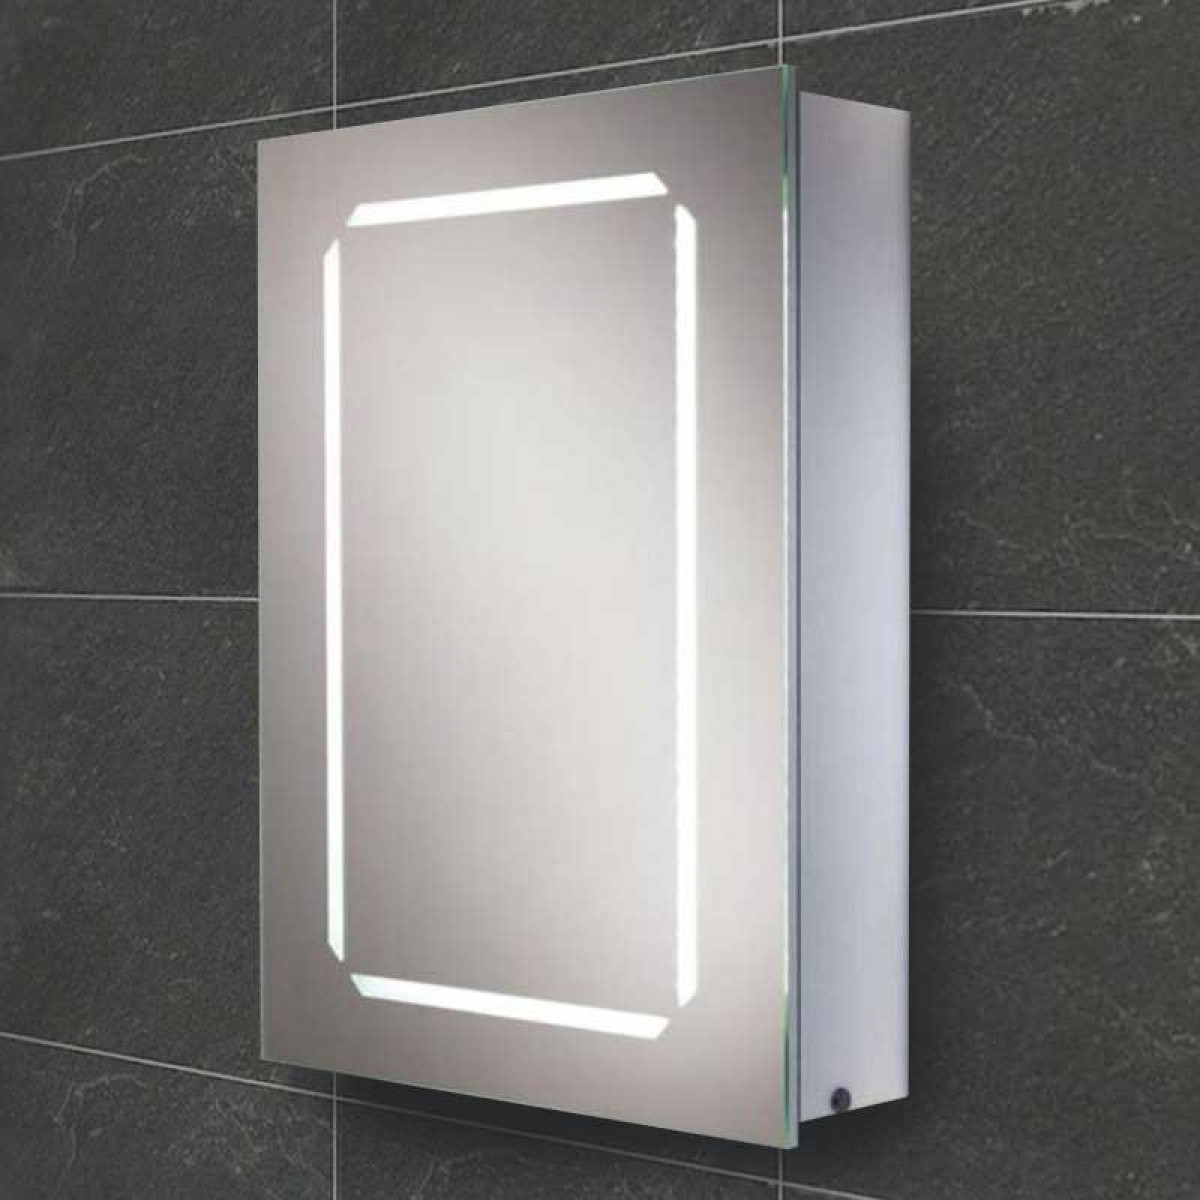 hib bathroom cabinets hib cosmic aluminium bathroom cabinet 16270